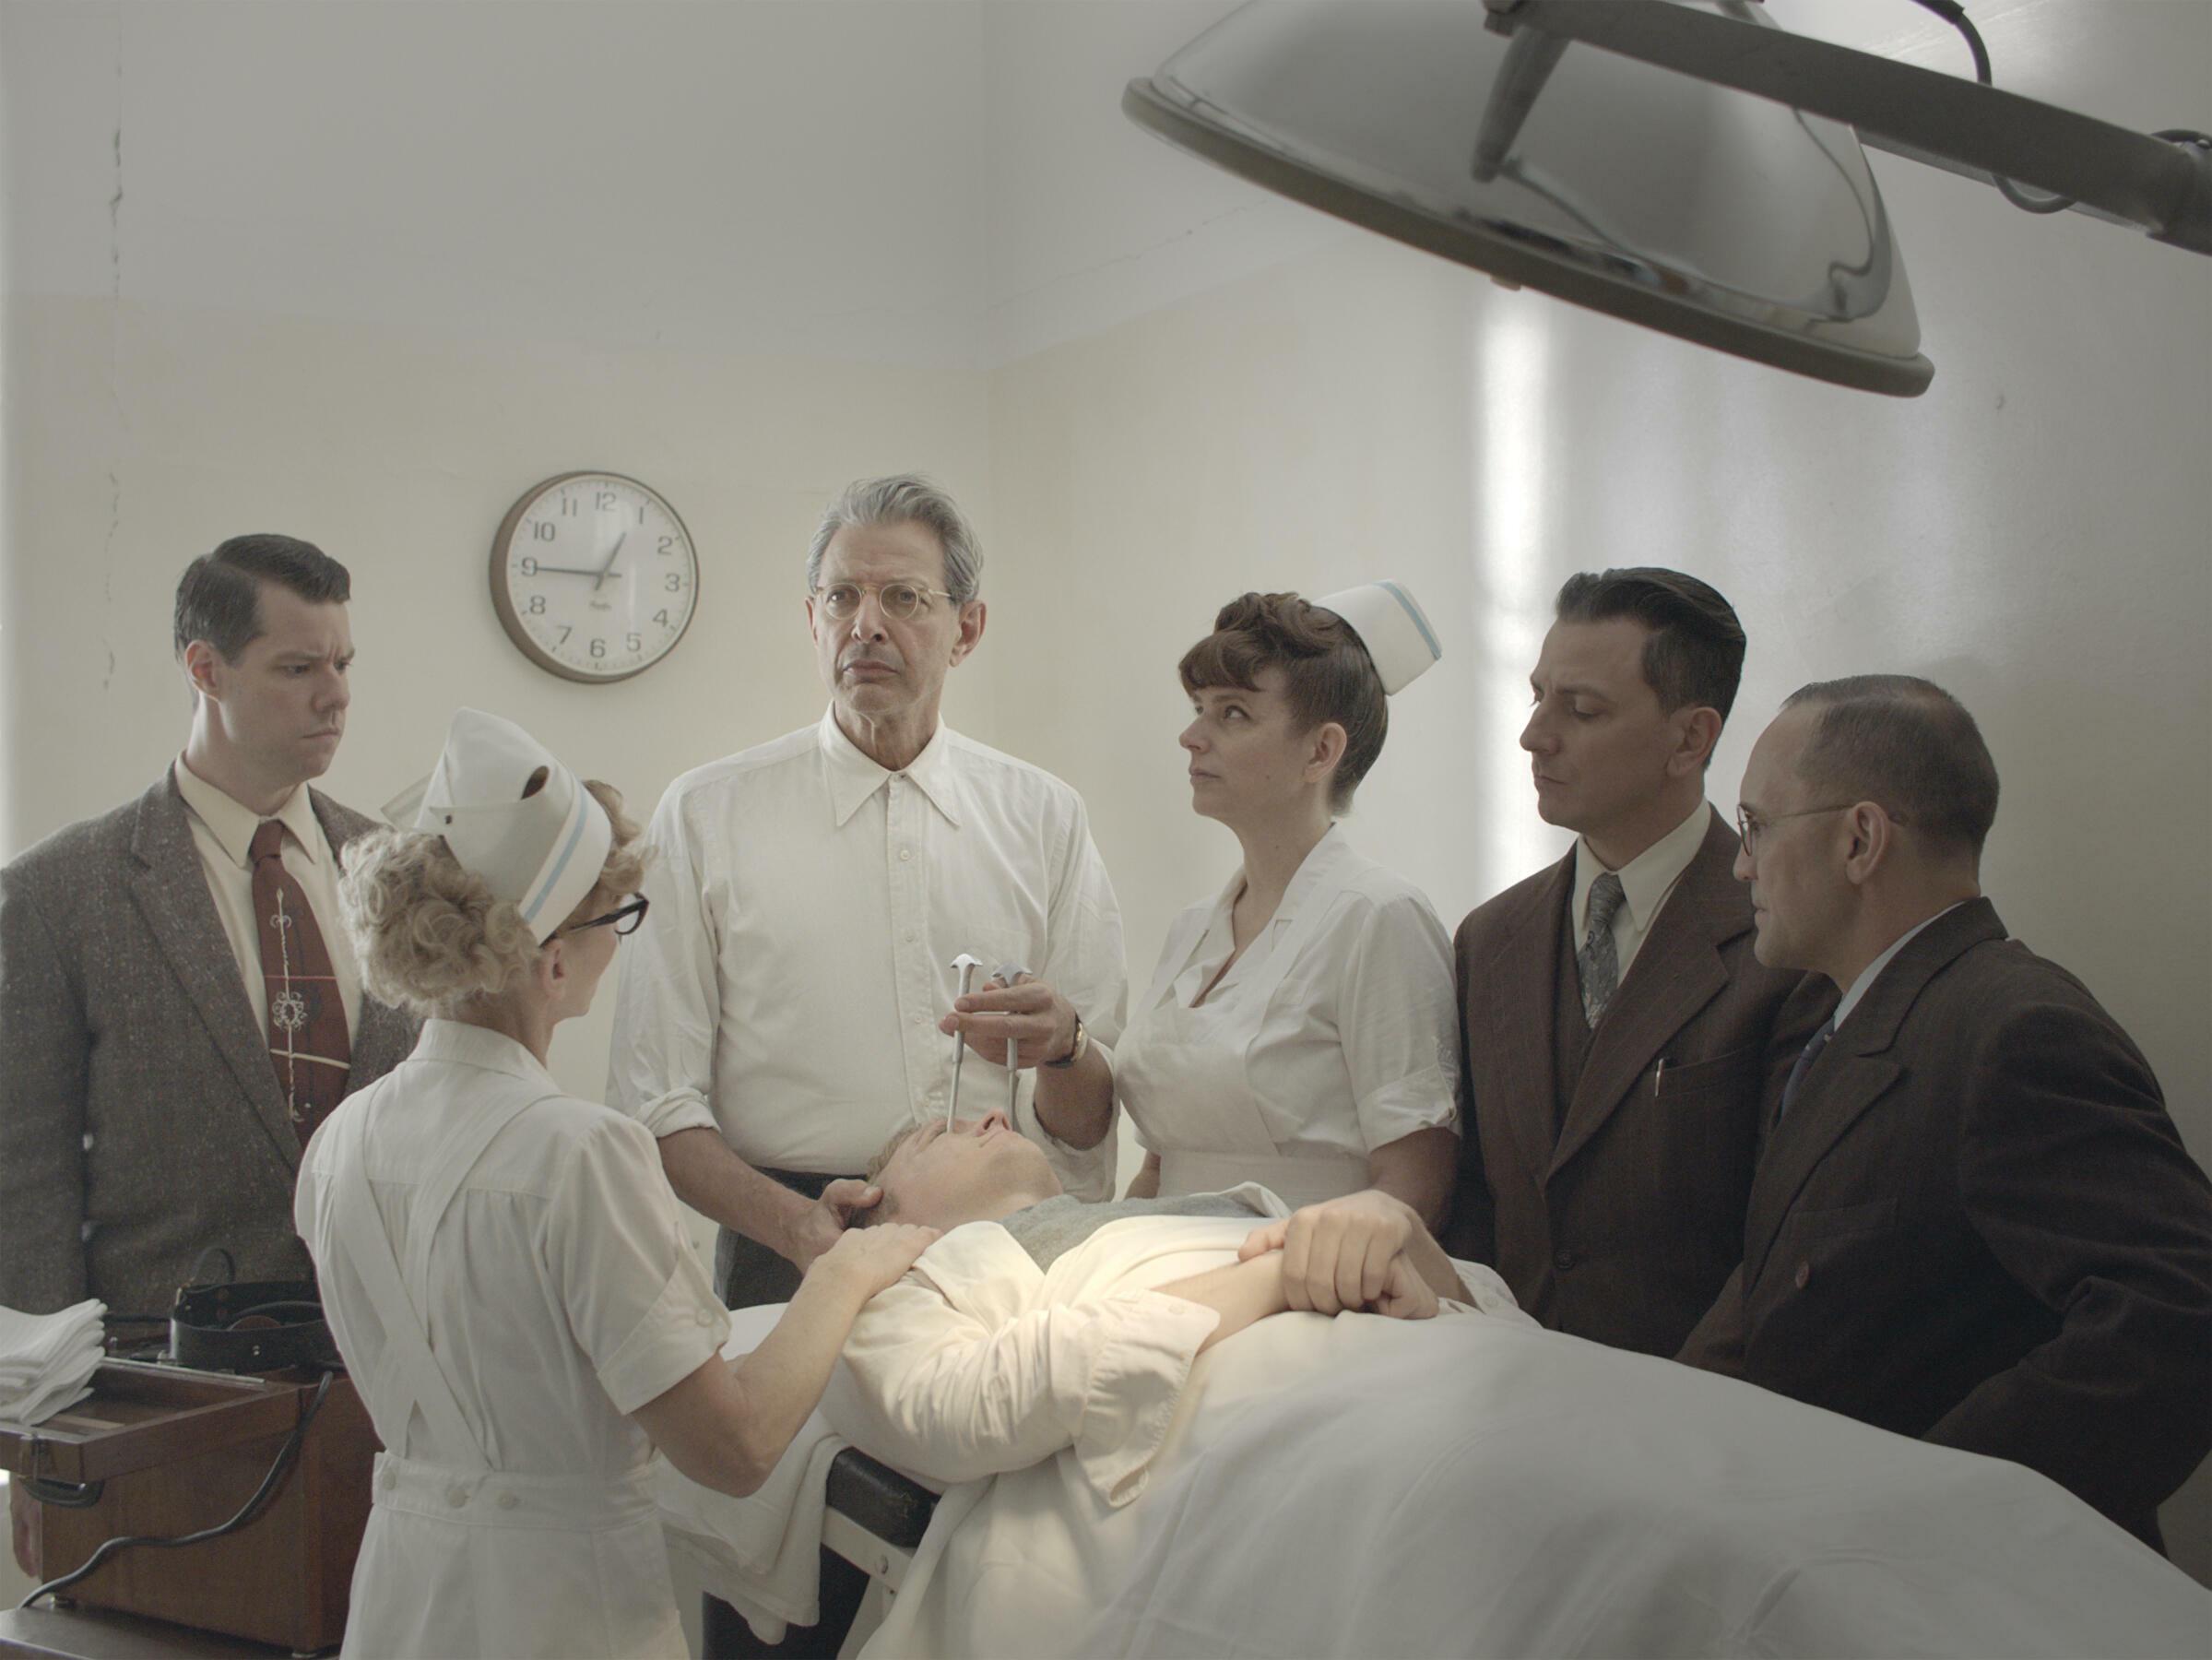 Dr Wallace Fiennes (Jeff Goldblum) about to perform a lobotomy through a patient's eye socket in the 2018 film 'The Mountain' by Rick Alverson